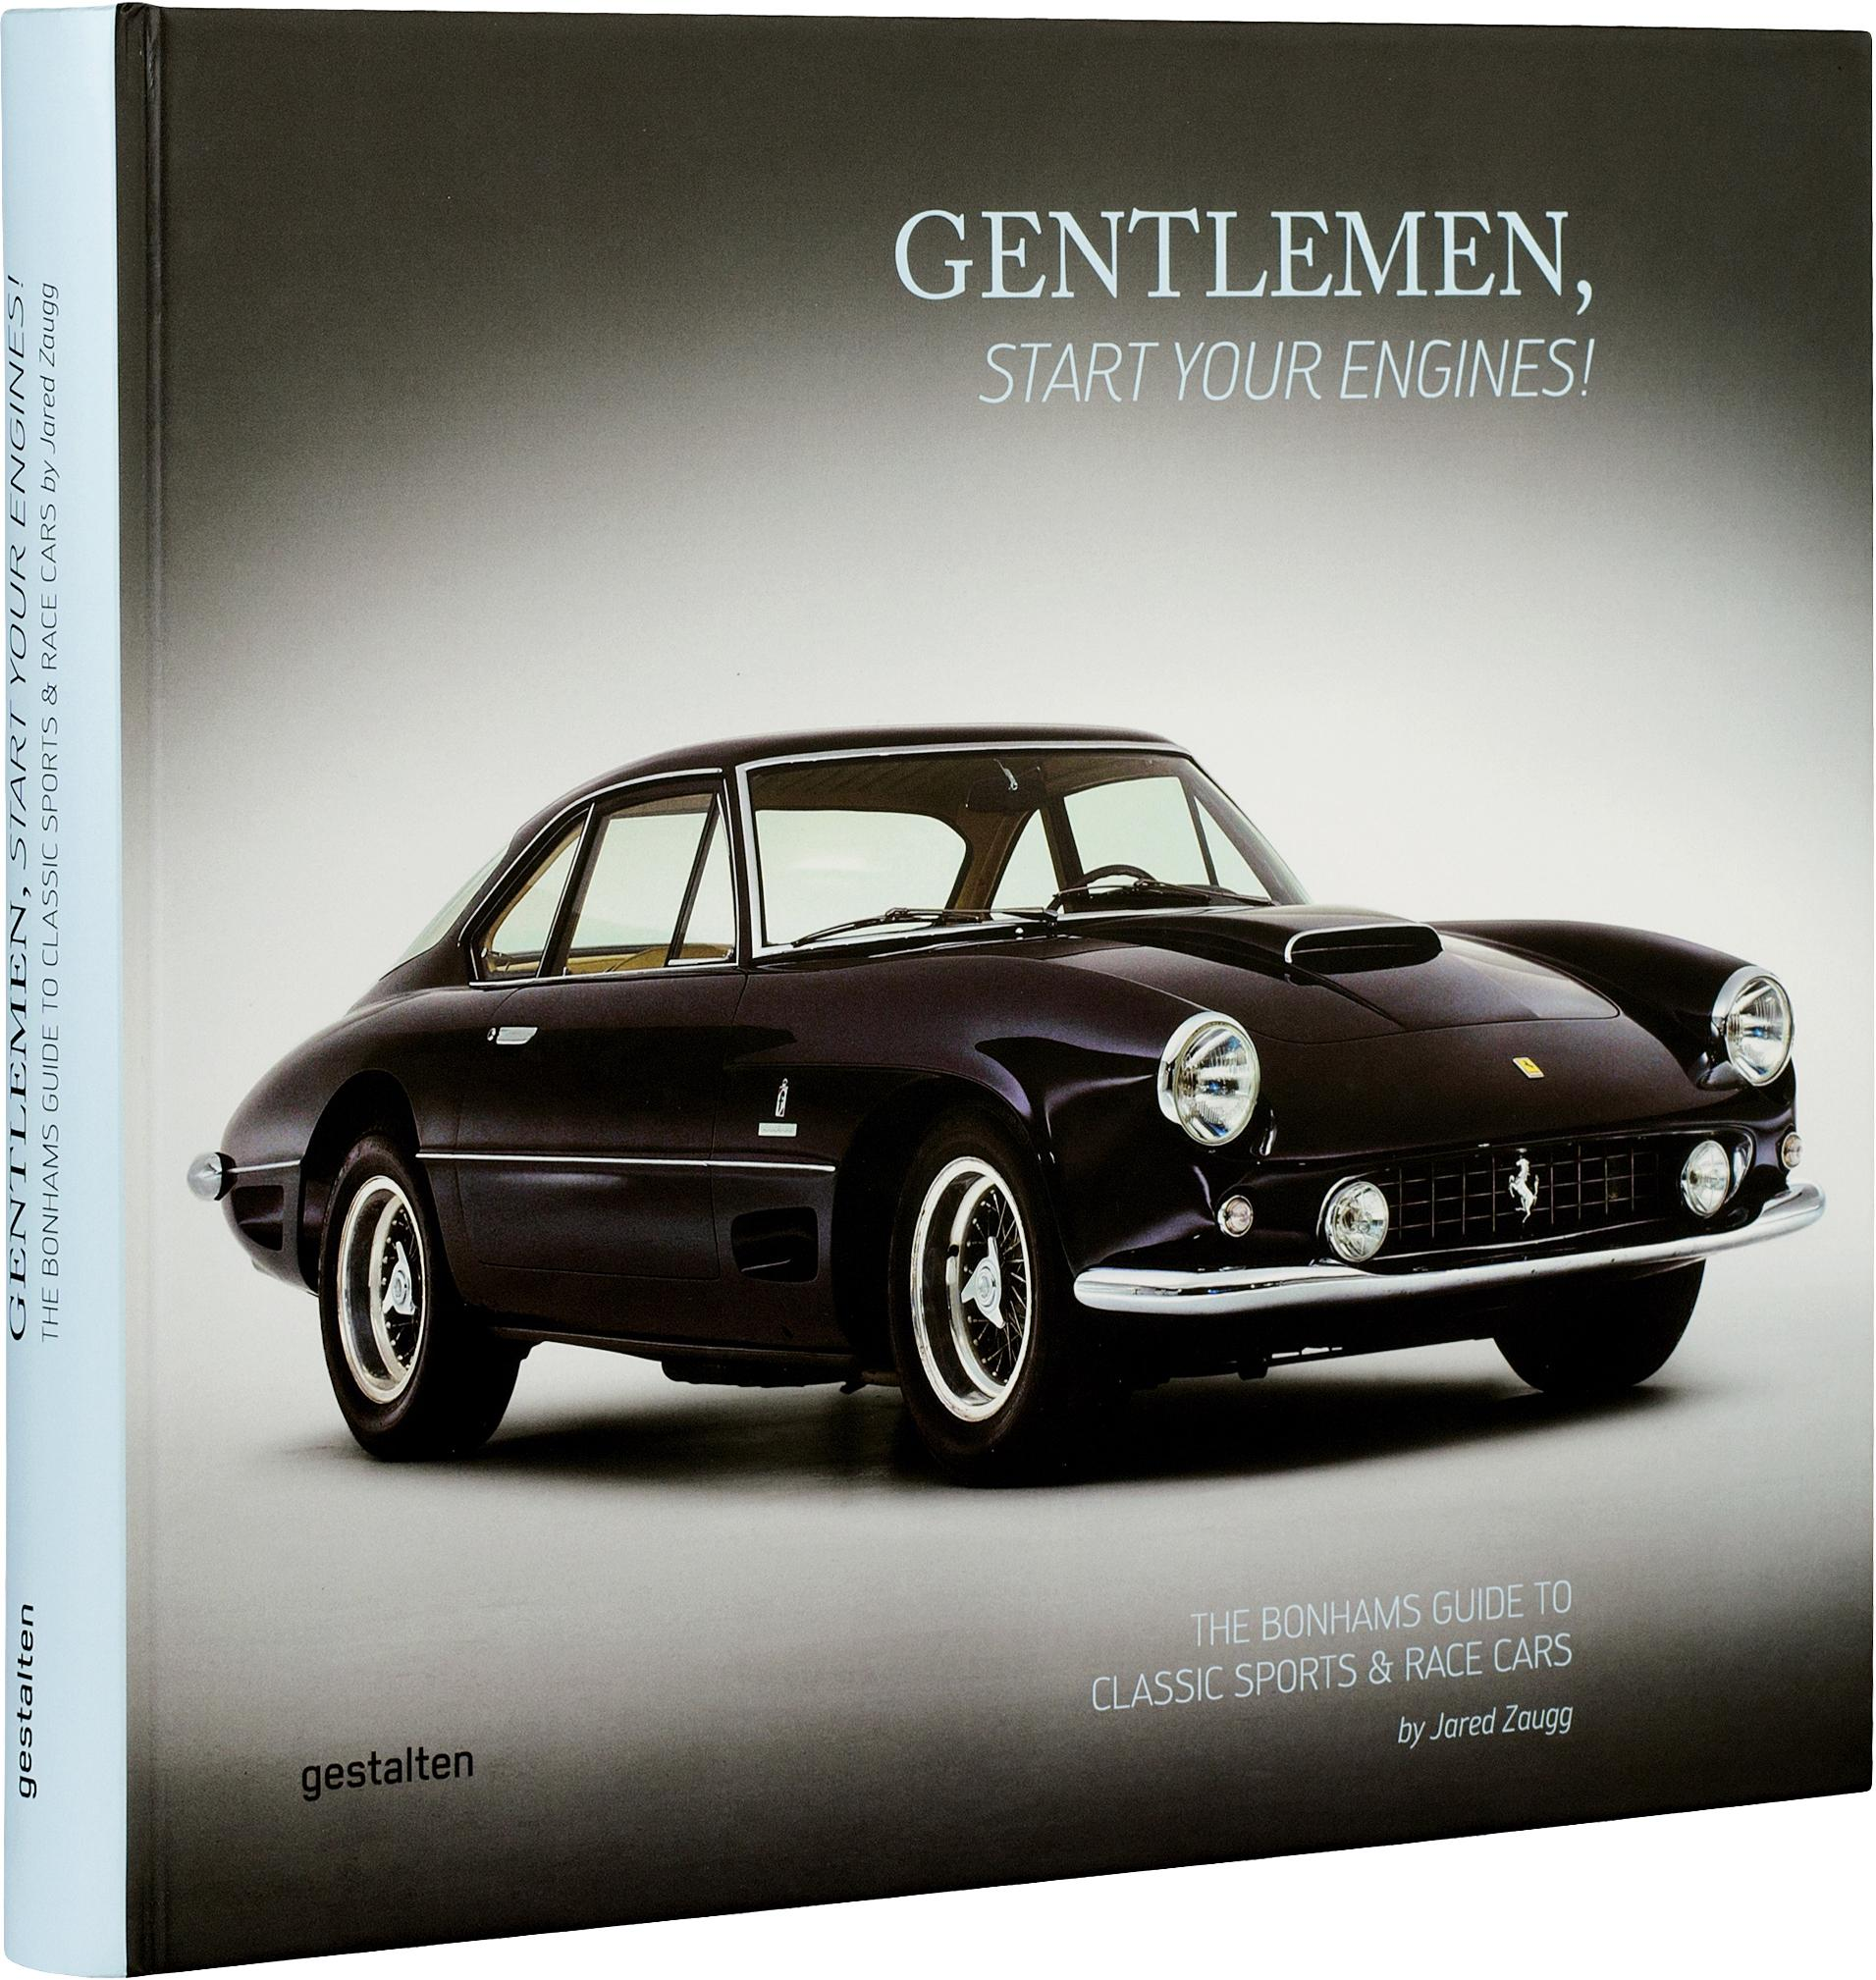 Bildband Gentlemen, start your engines!, Papier, Hardcover, Mehrfarbig, 27 x 30 cm